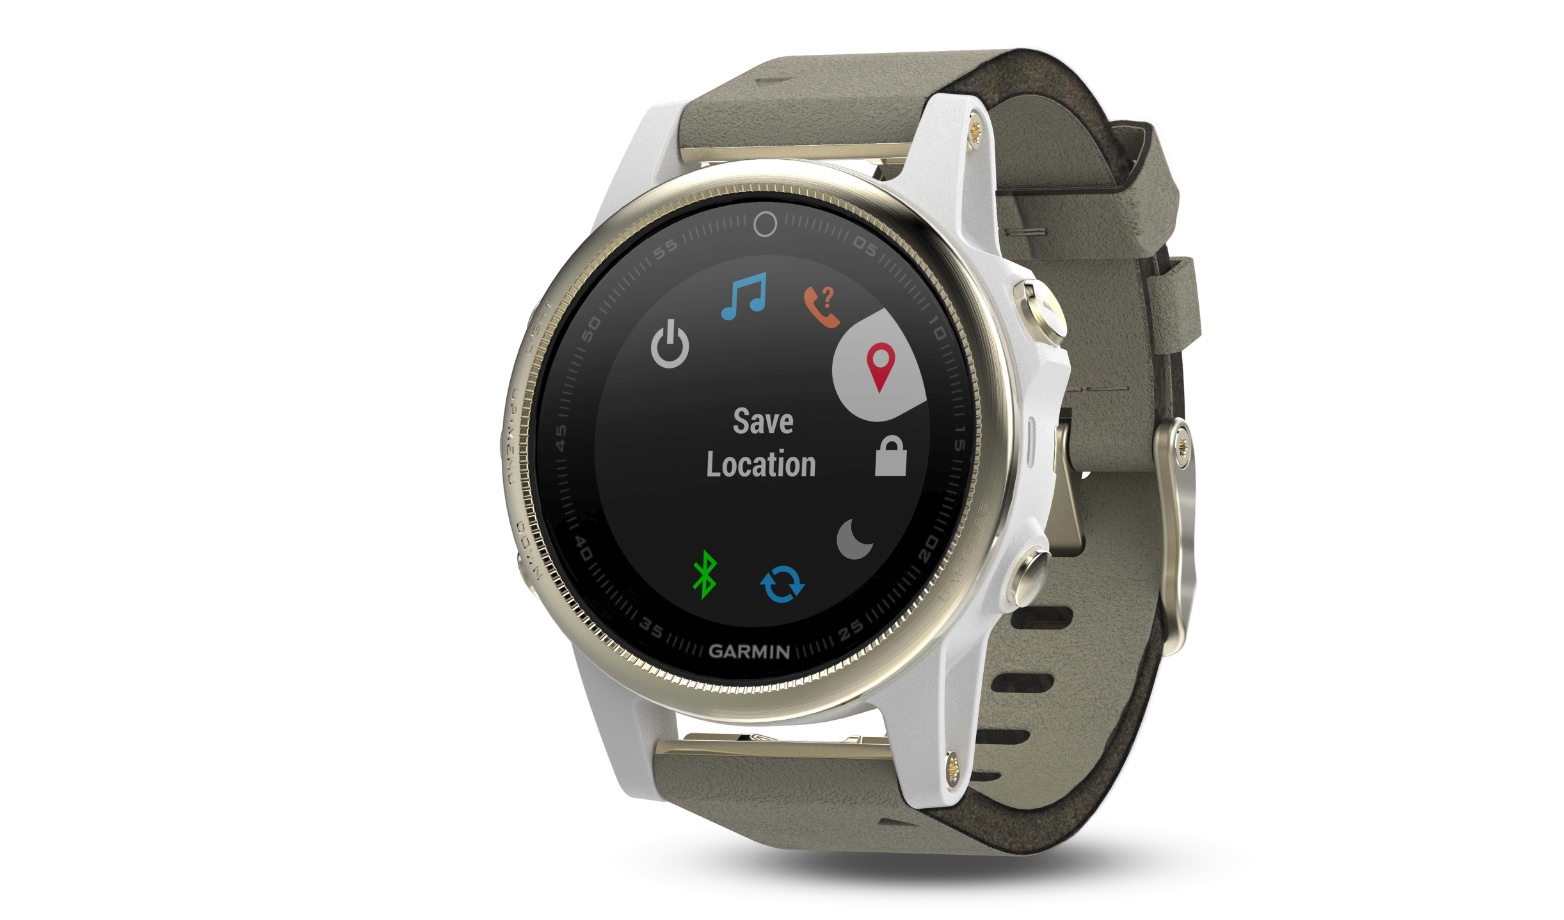 garmin fenix 5s saphir im vergleich navigation gps blitzer pois. Black Bedroom Furniture Sets. Home Design Ideas